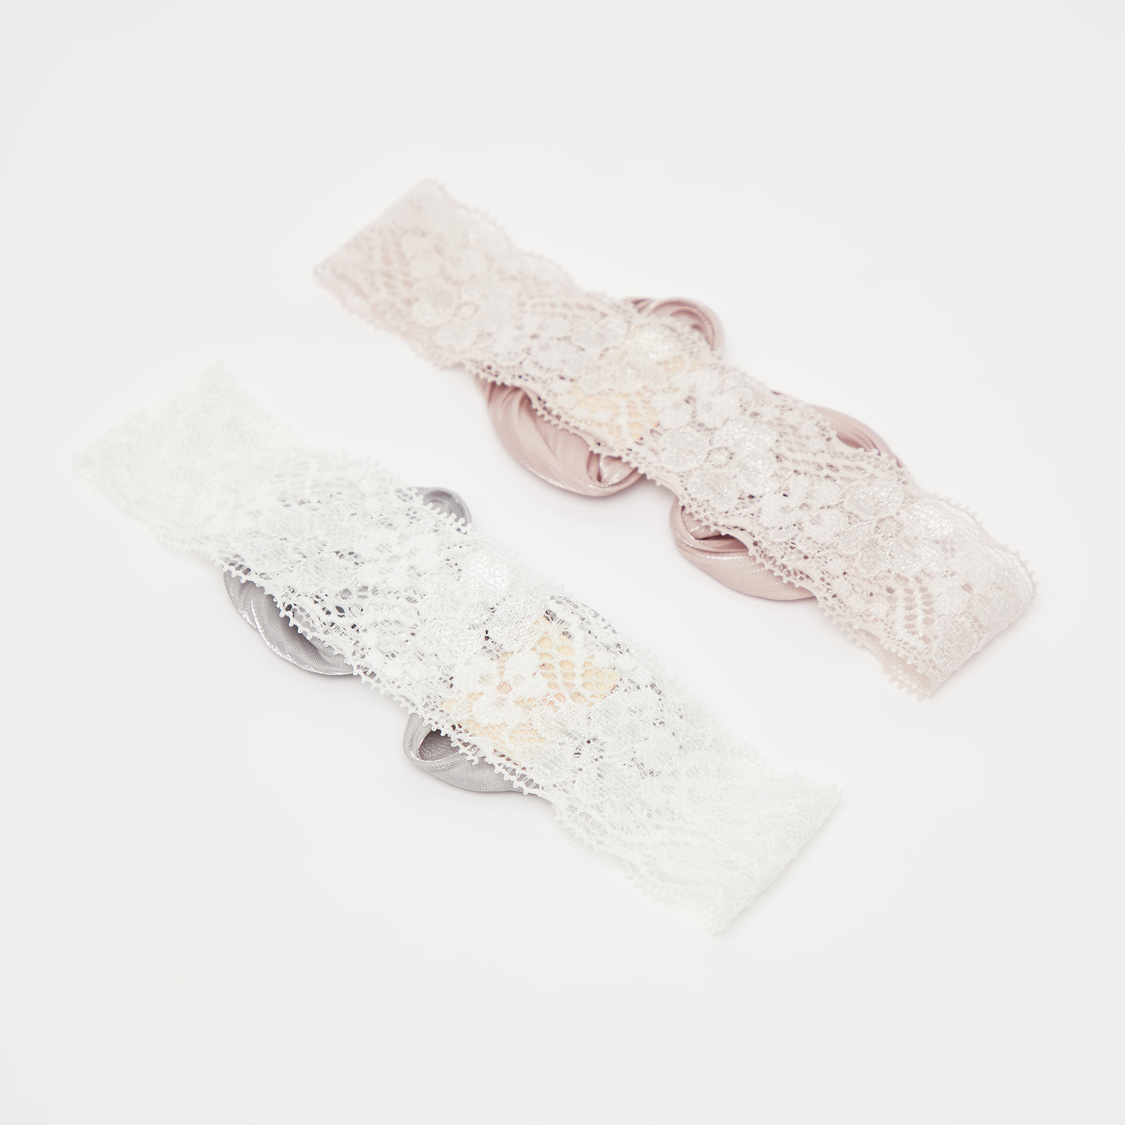 Set of 2 - Lace Detail Hair Bands with Bow Applique